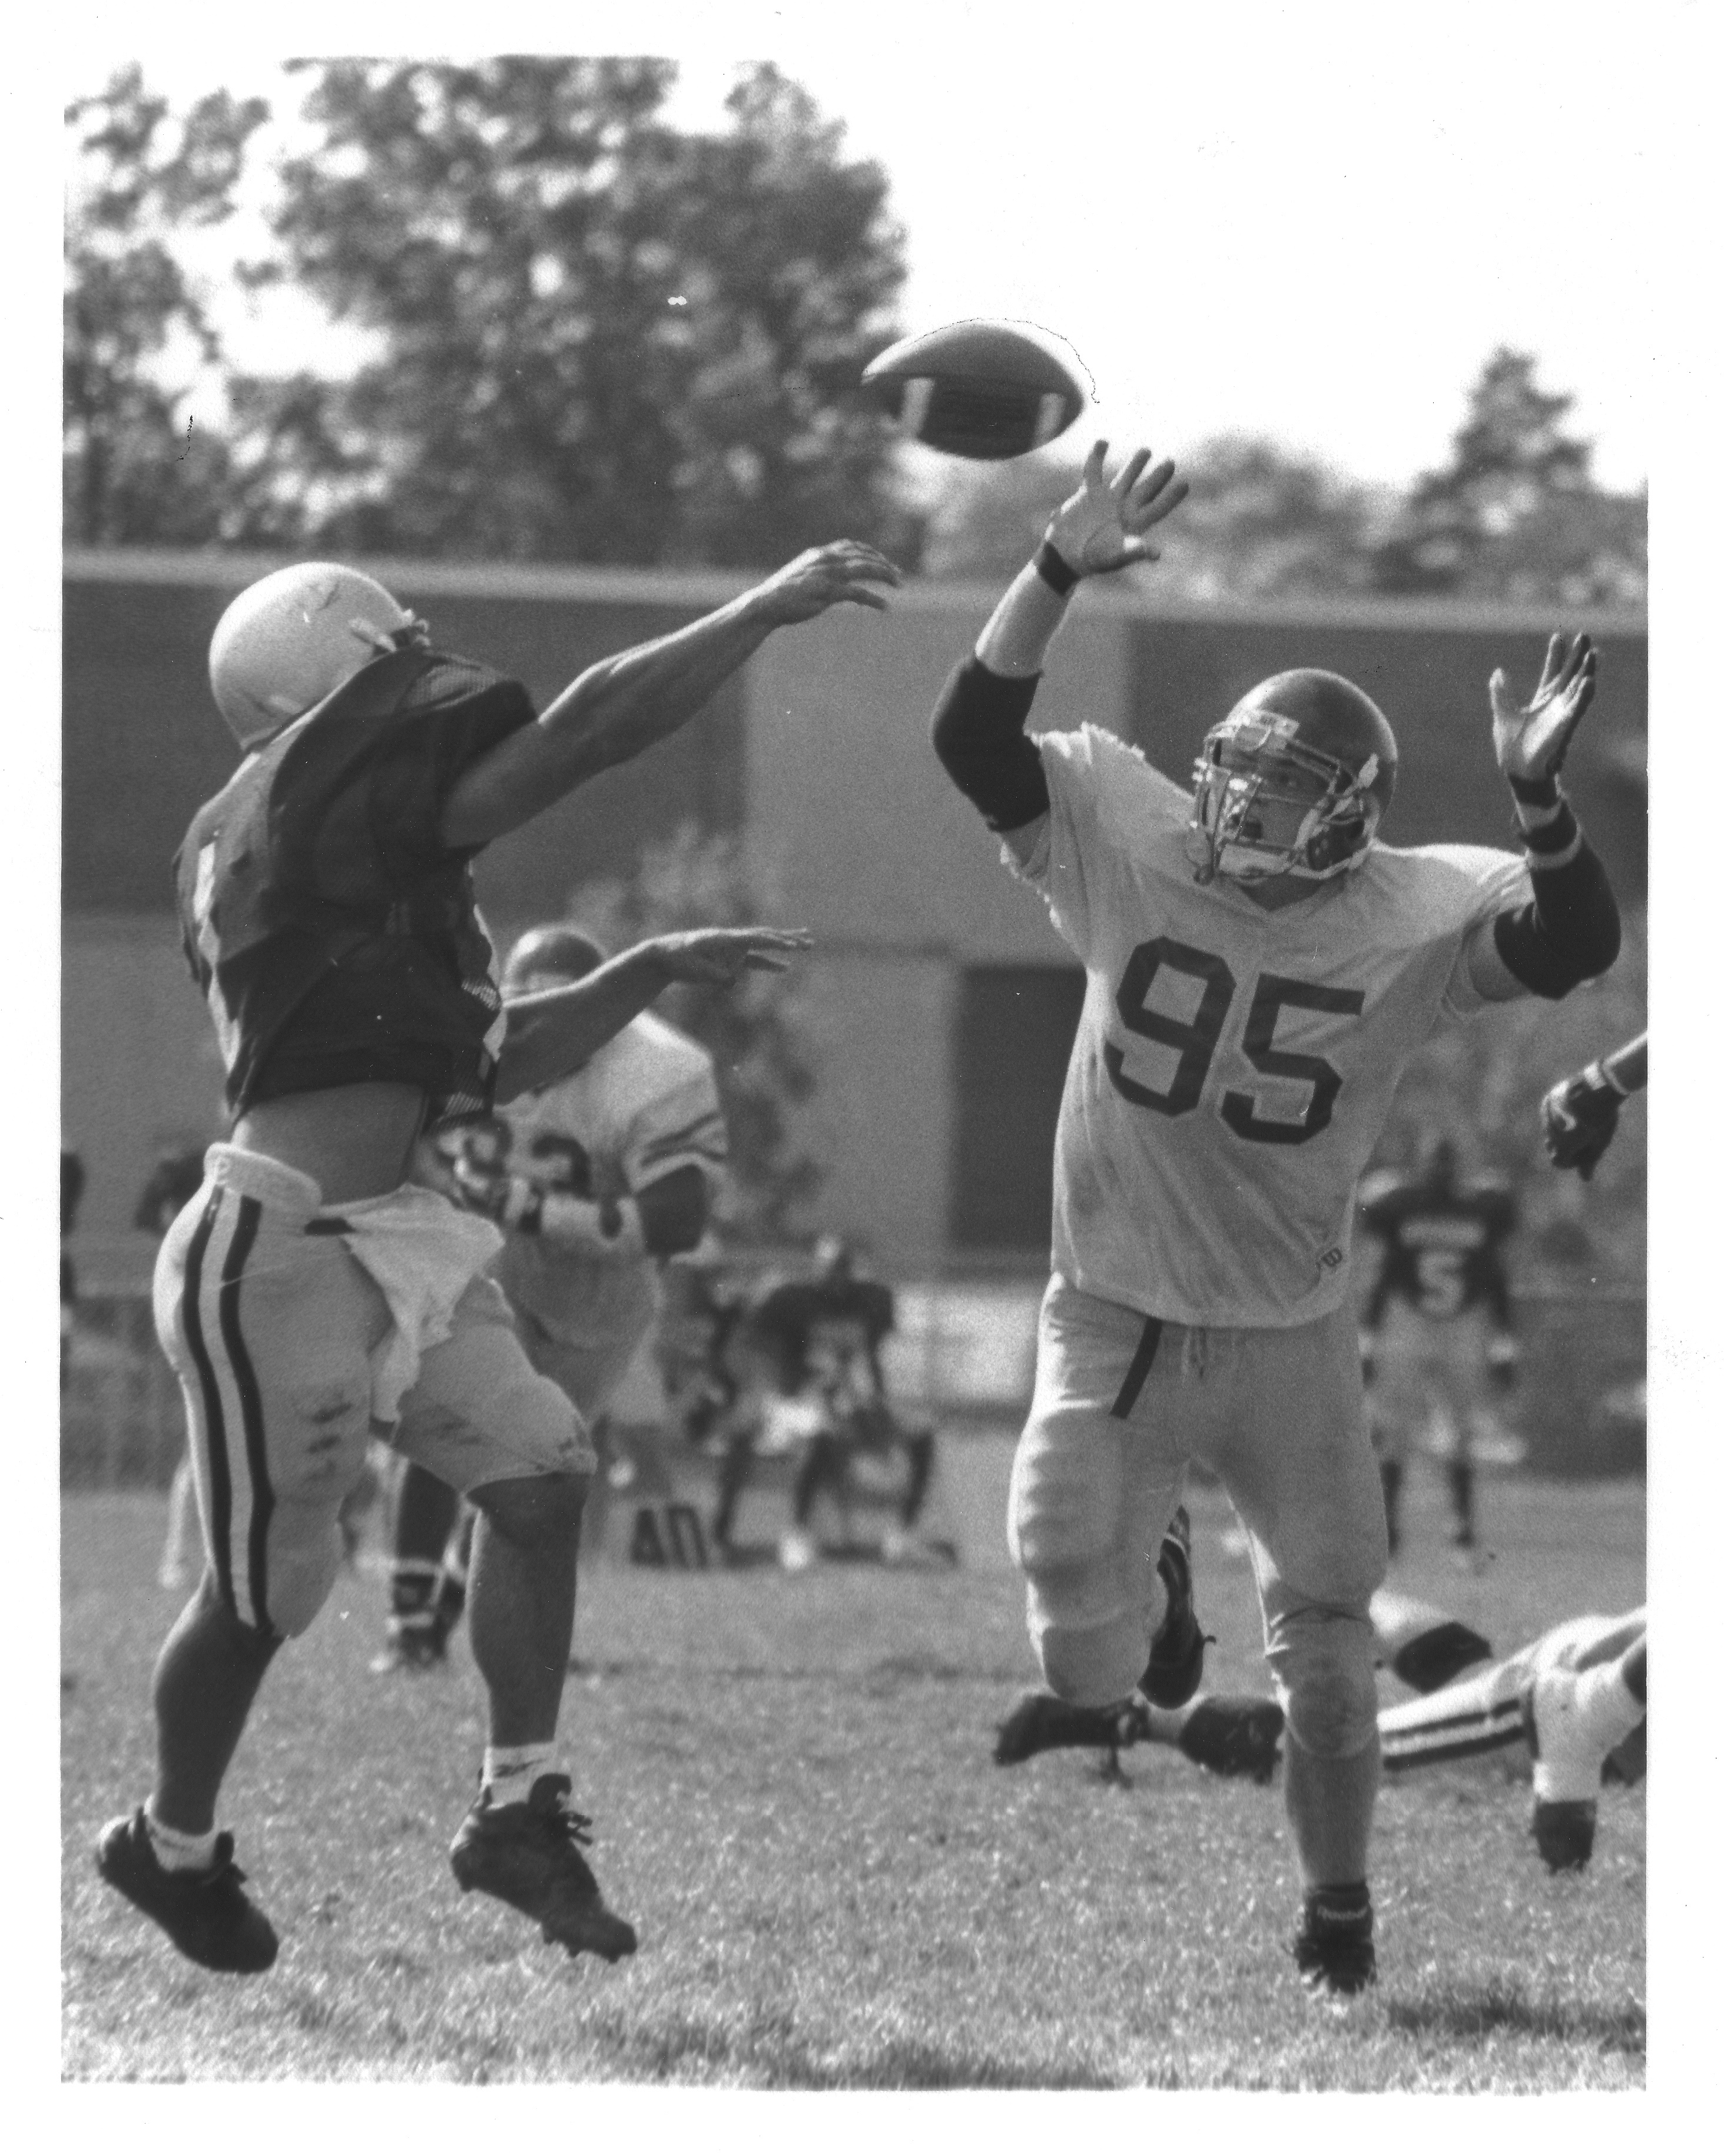 George Mason University football player in action against an unidentified opponent, September 30, 1995